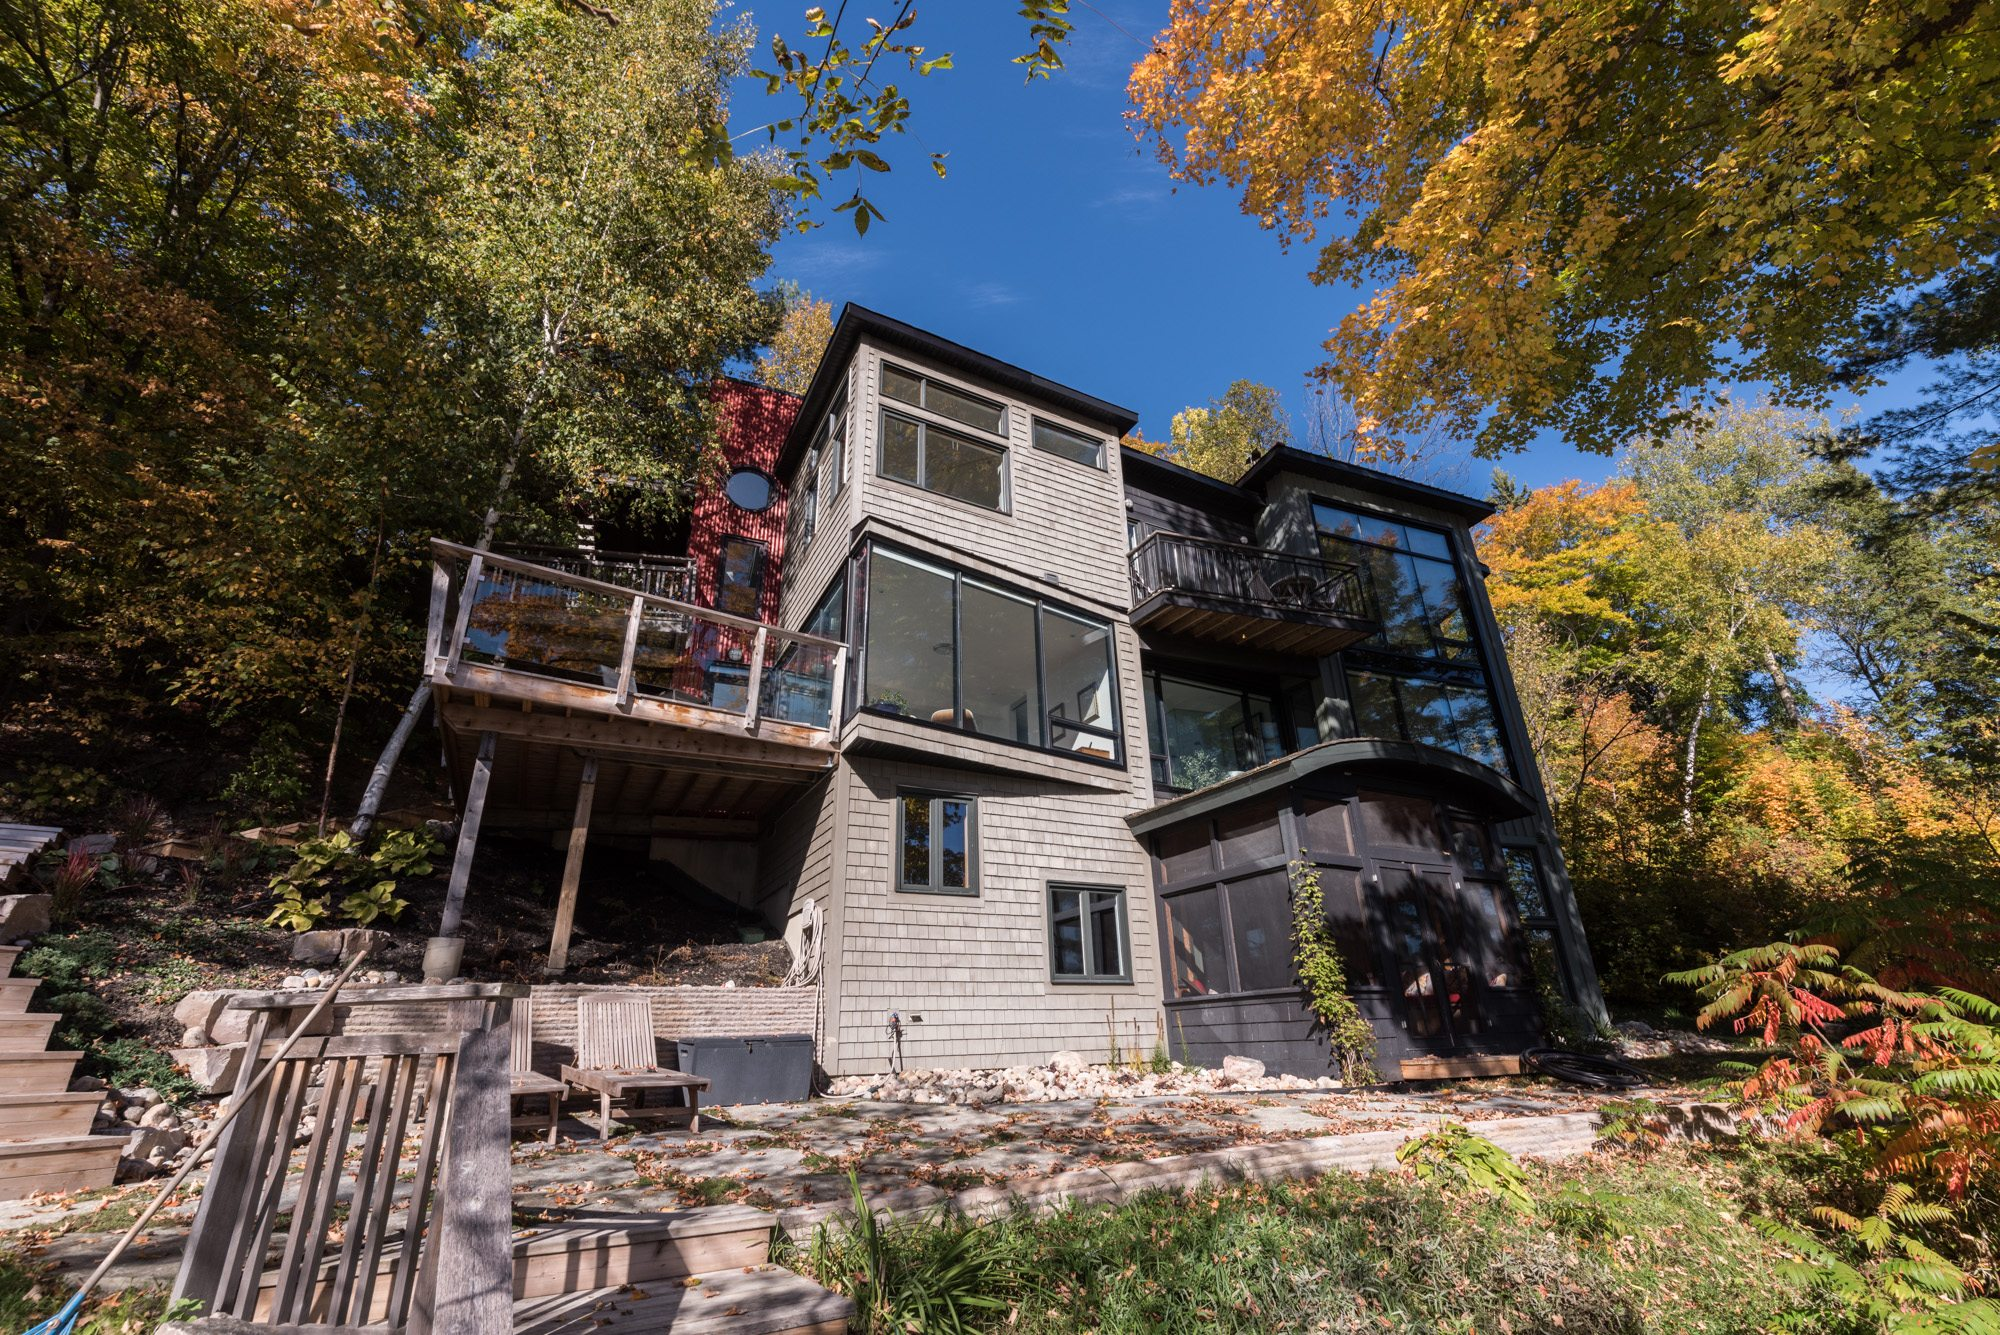 A view of the cottage exterior taken from the banks of the Gatineau River shows  the eccentric angles and varied finishes. Photography PhotoluxStudio.com — Christian Lalonde